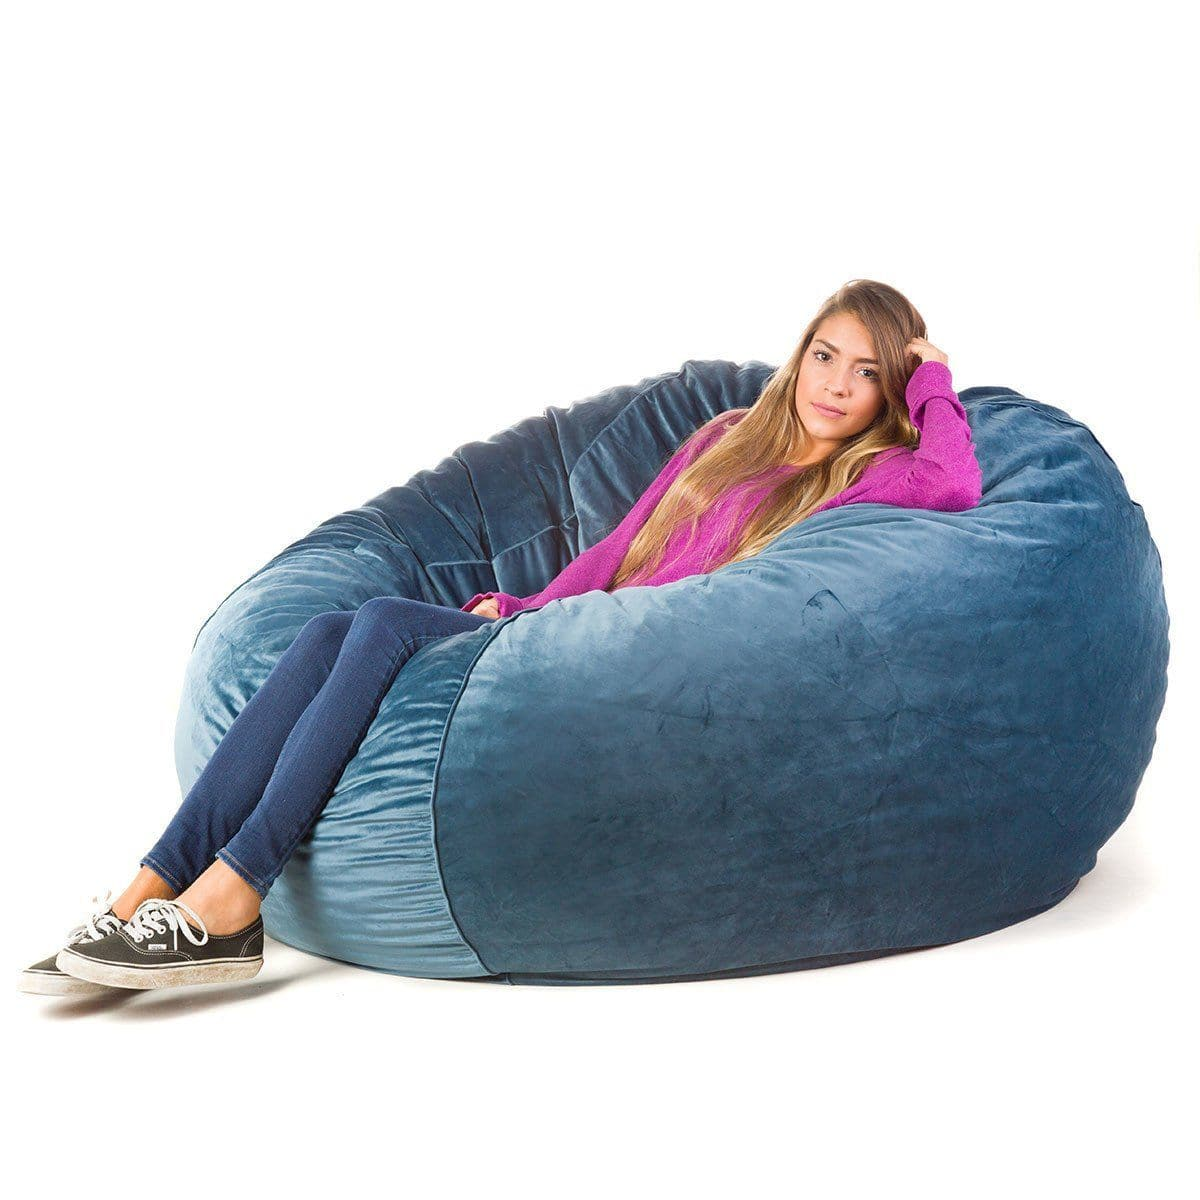 Convertible Bean Bag - POSH Bean Bag Chair - X-Large